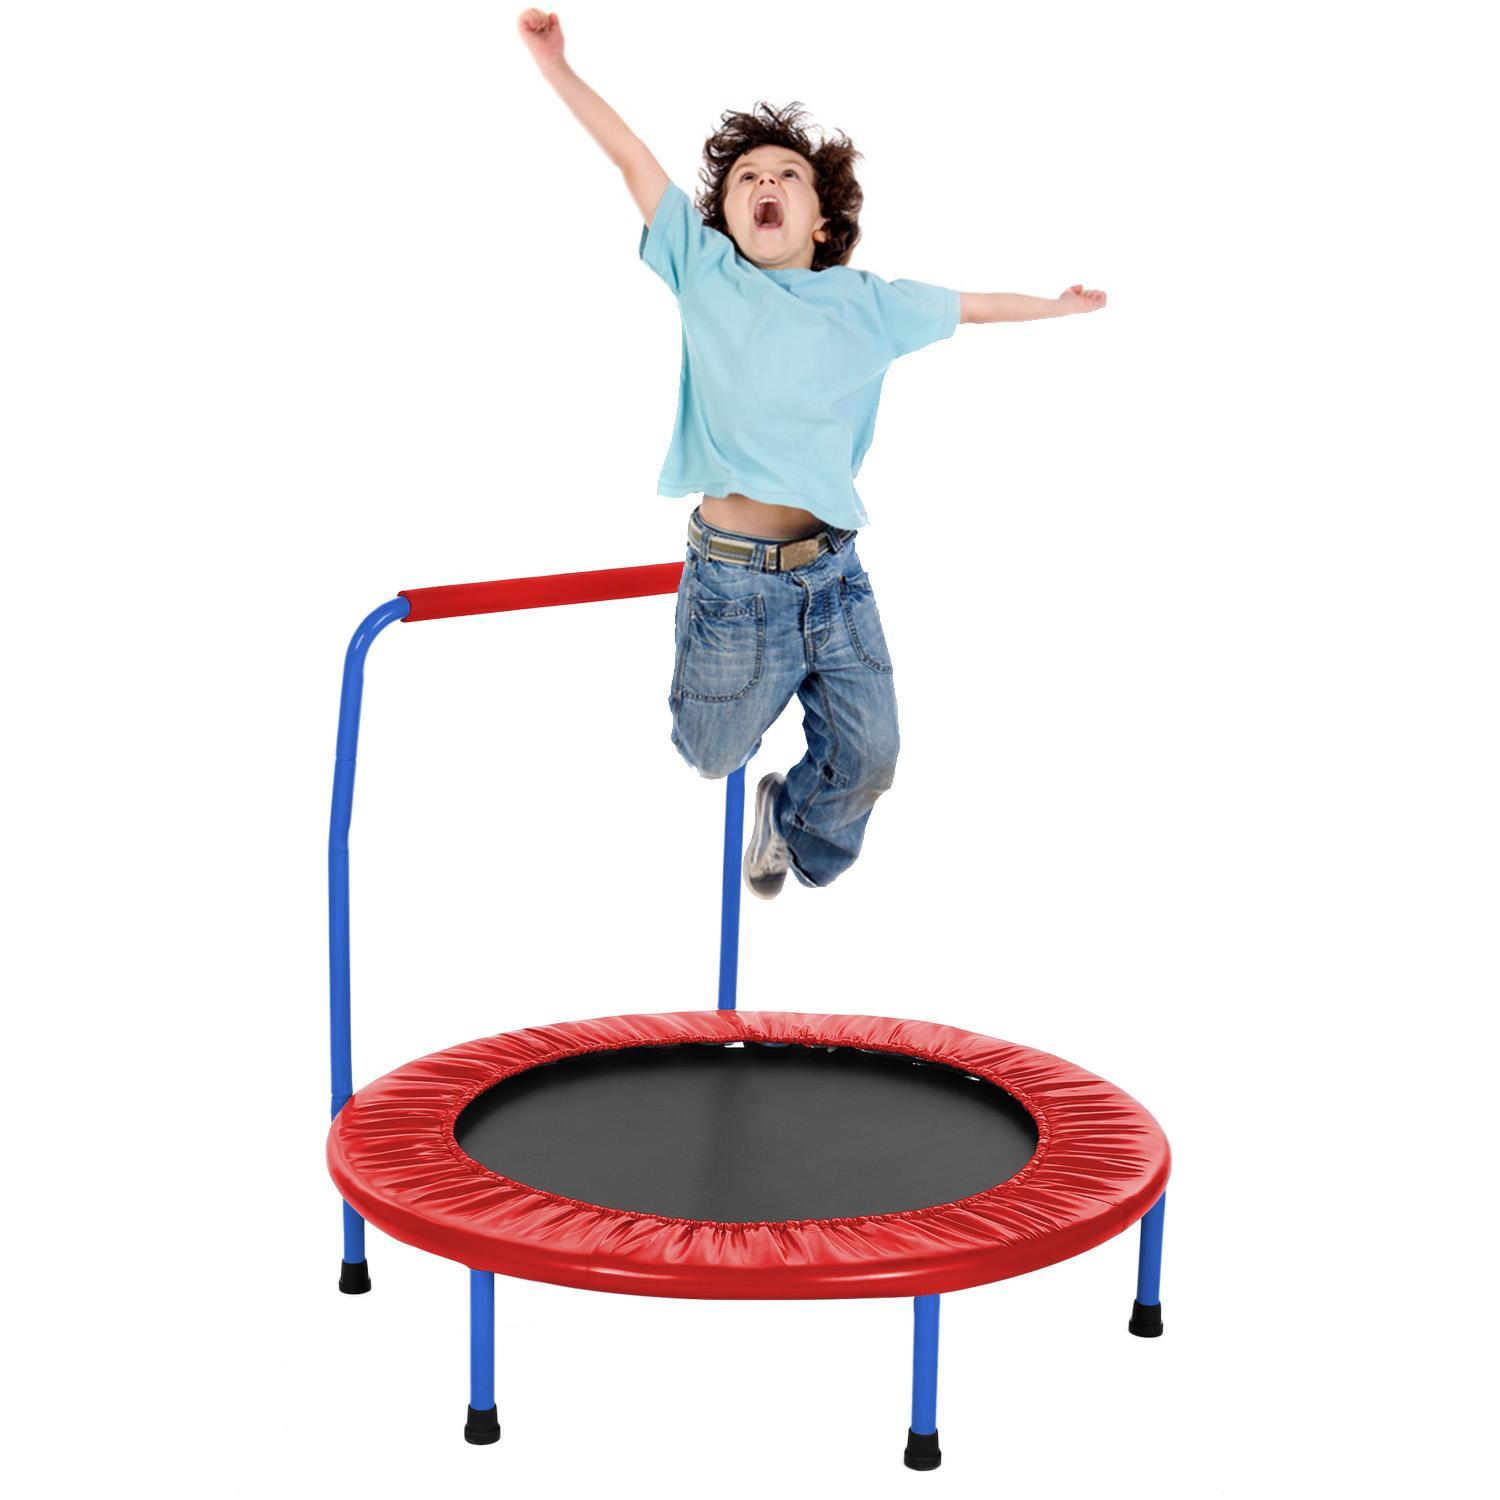 """Famies Childrens Mini Trampoline,36/""""Kids Indoor and Outdoor Trampoline,Recreational Sports Trampoline with Safety Handrail"""